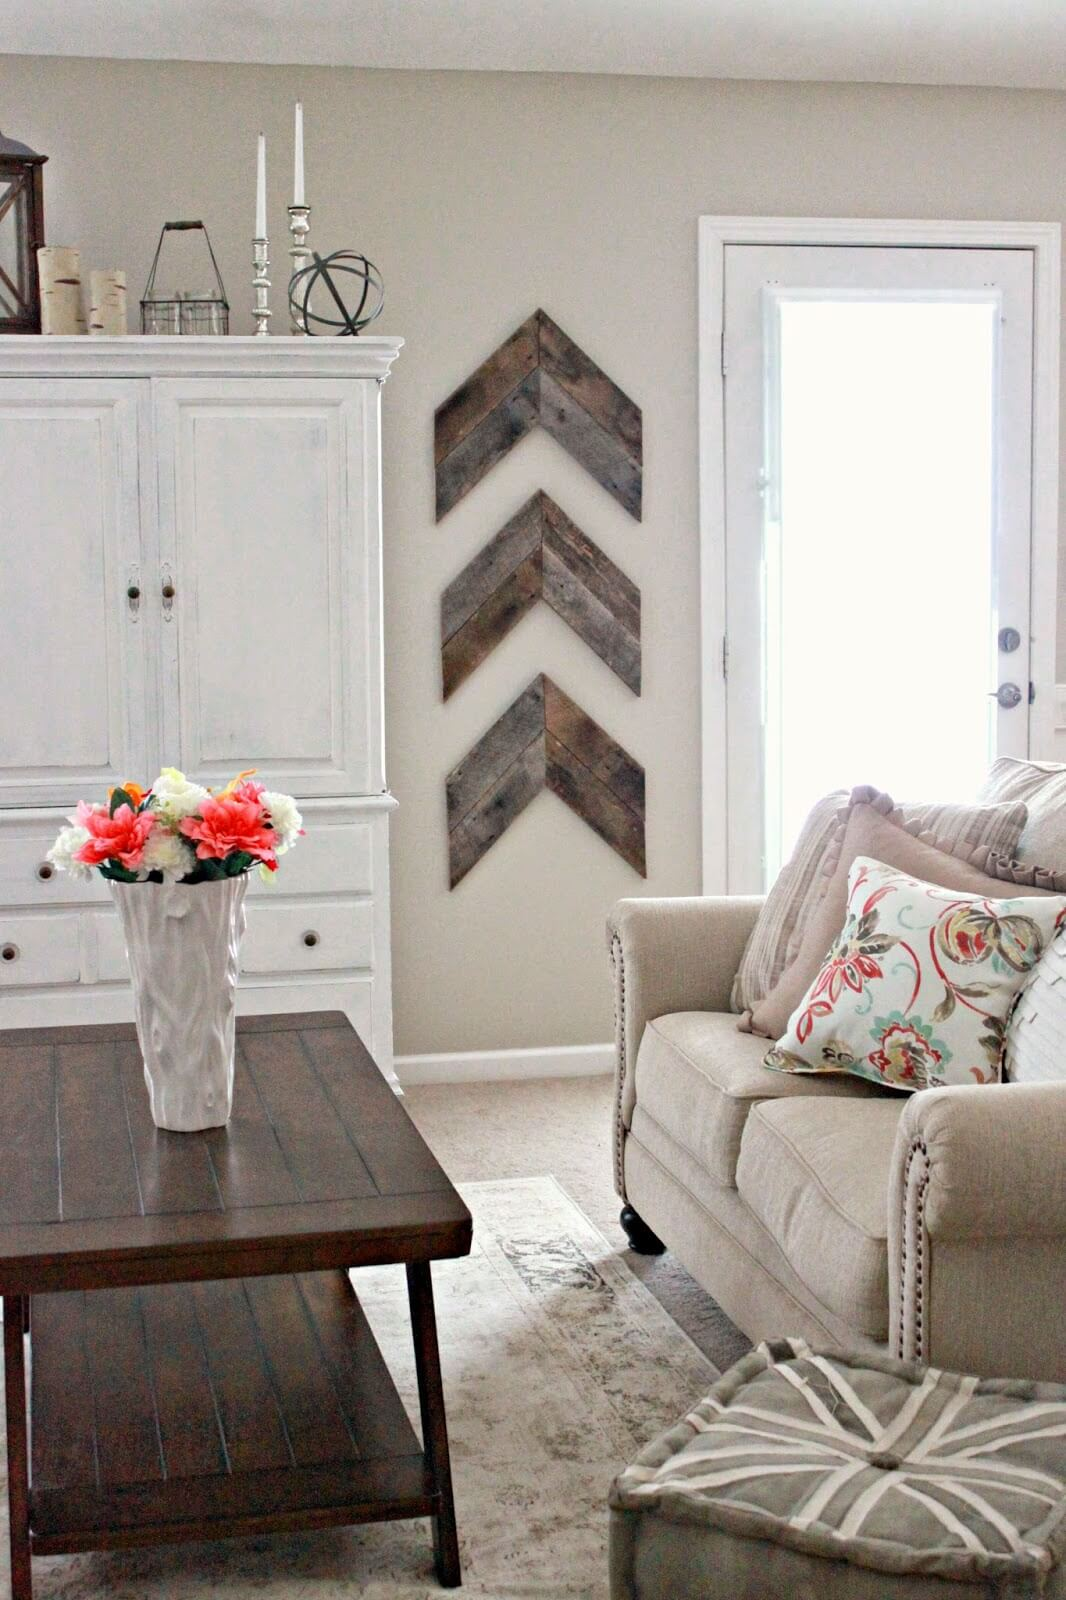 Wooden Furniture and Decoration